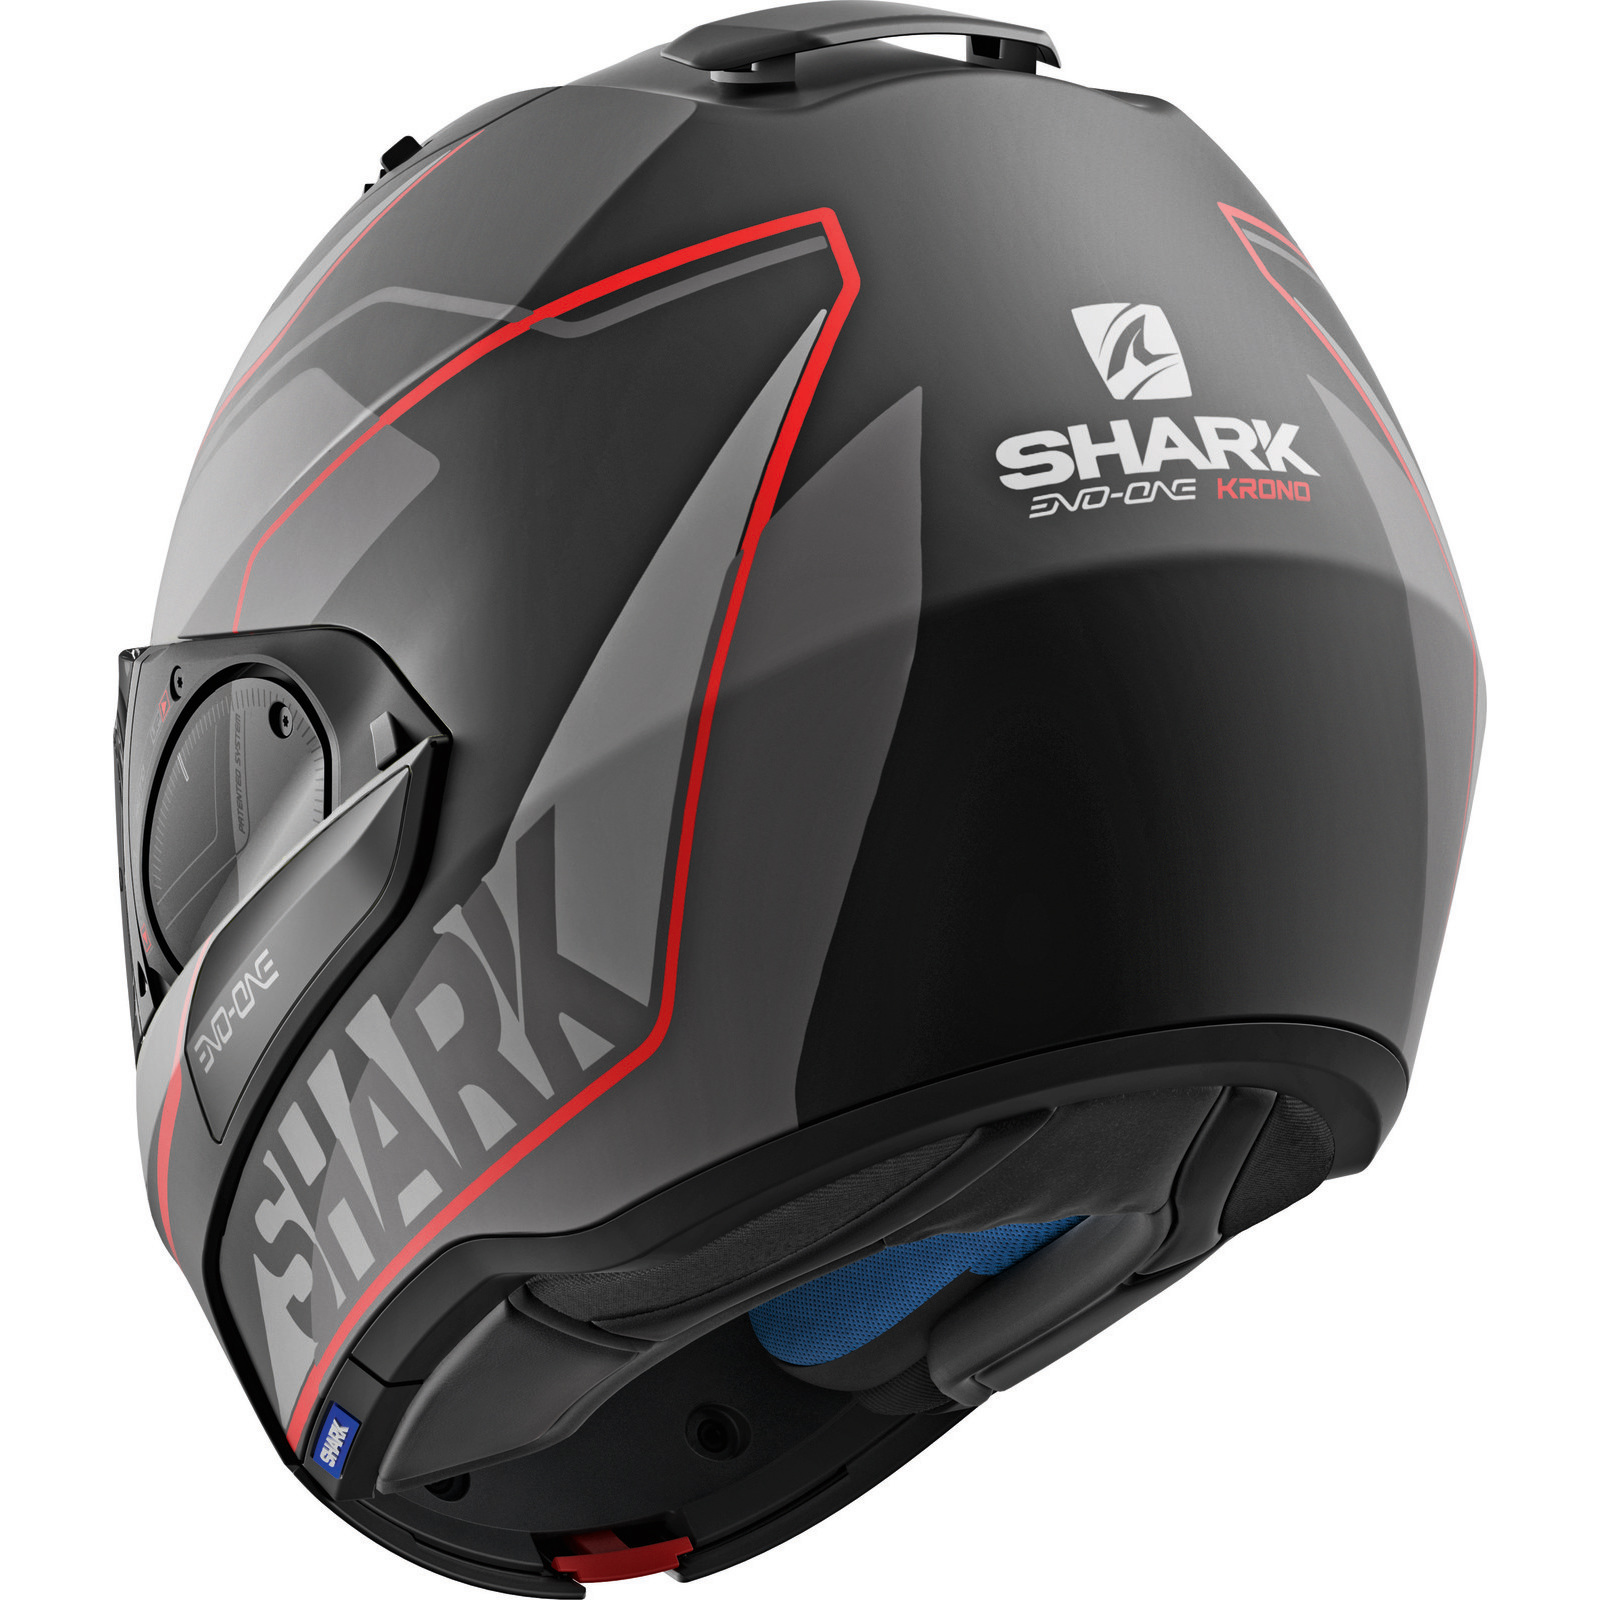 shark evo one 2 krono black anthracite red flip front motorcycle helmet kar lid ebay. Black Bedroom Furniture Sets. Home Design Ideas